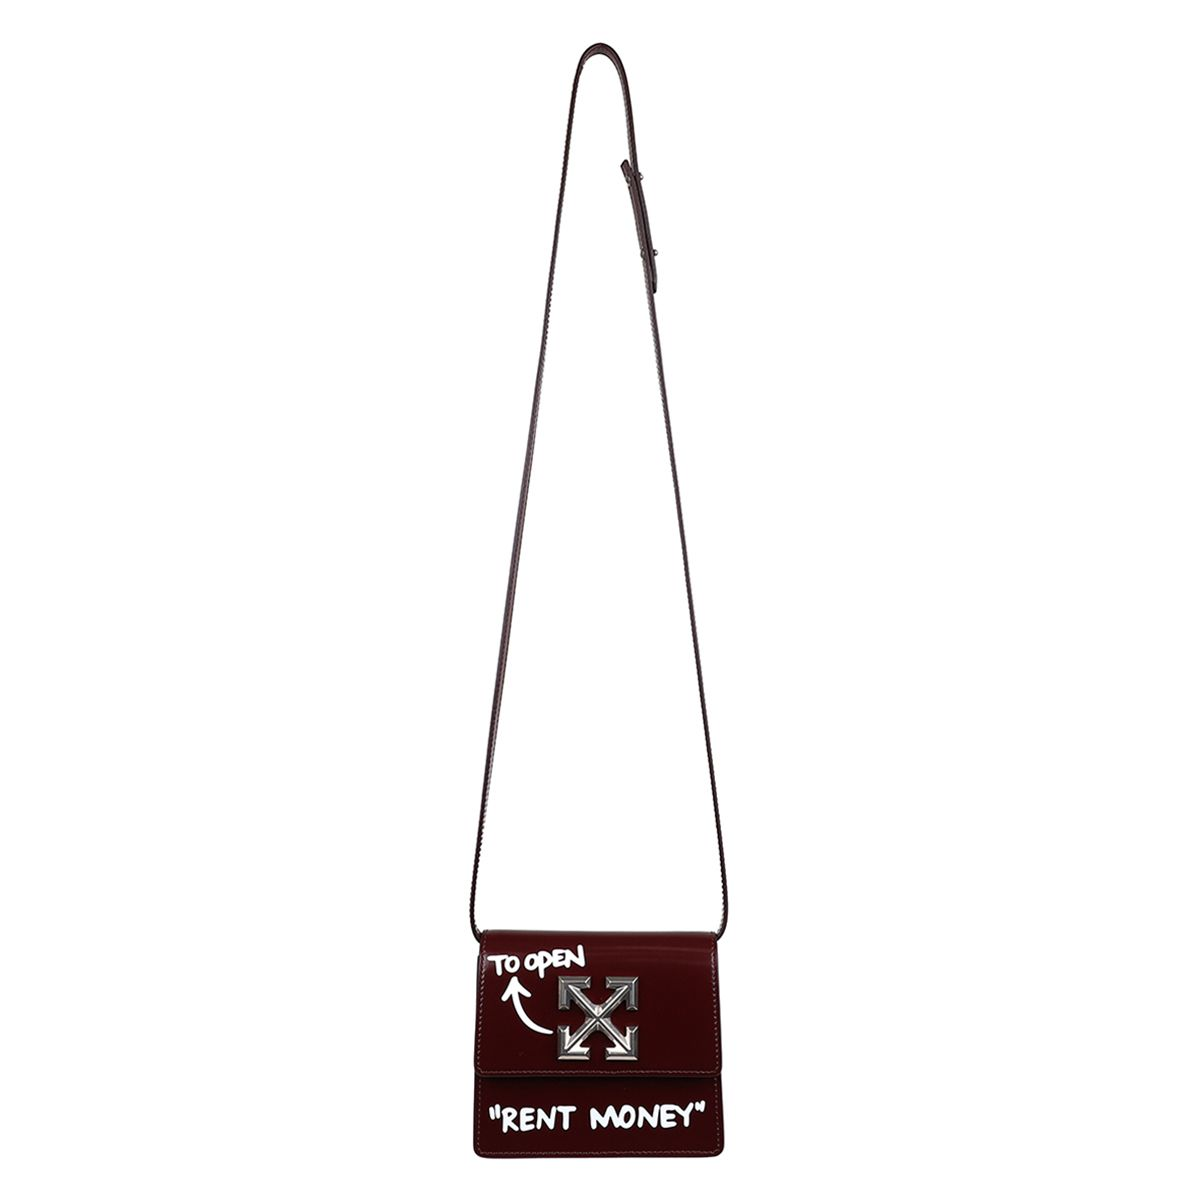 OFF-WHITE c/o Virgil Abloh WOMENS TURN TO OPEN JITNEY 0.7 / 2801 : BURGUNDY WHITE